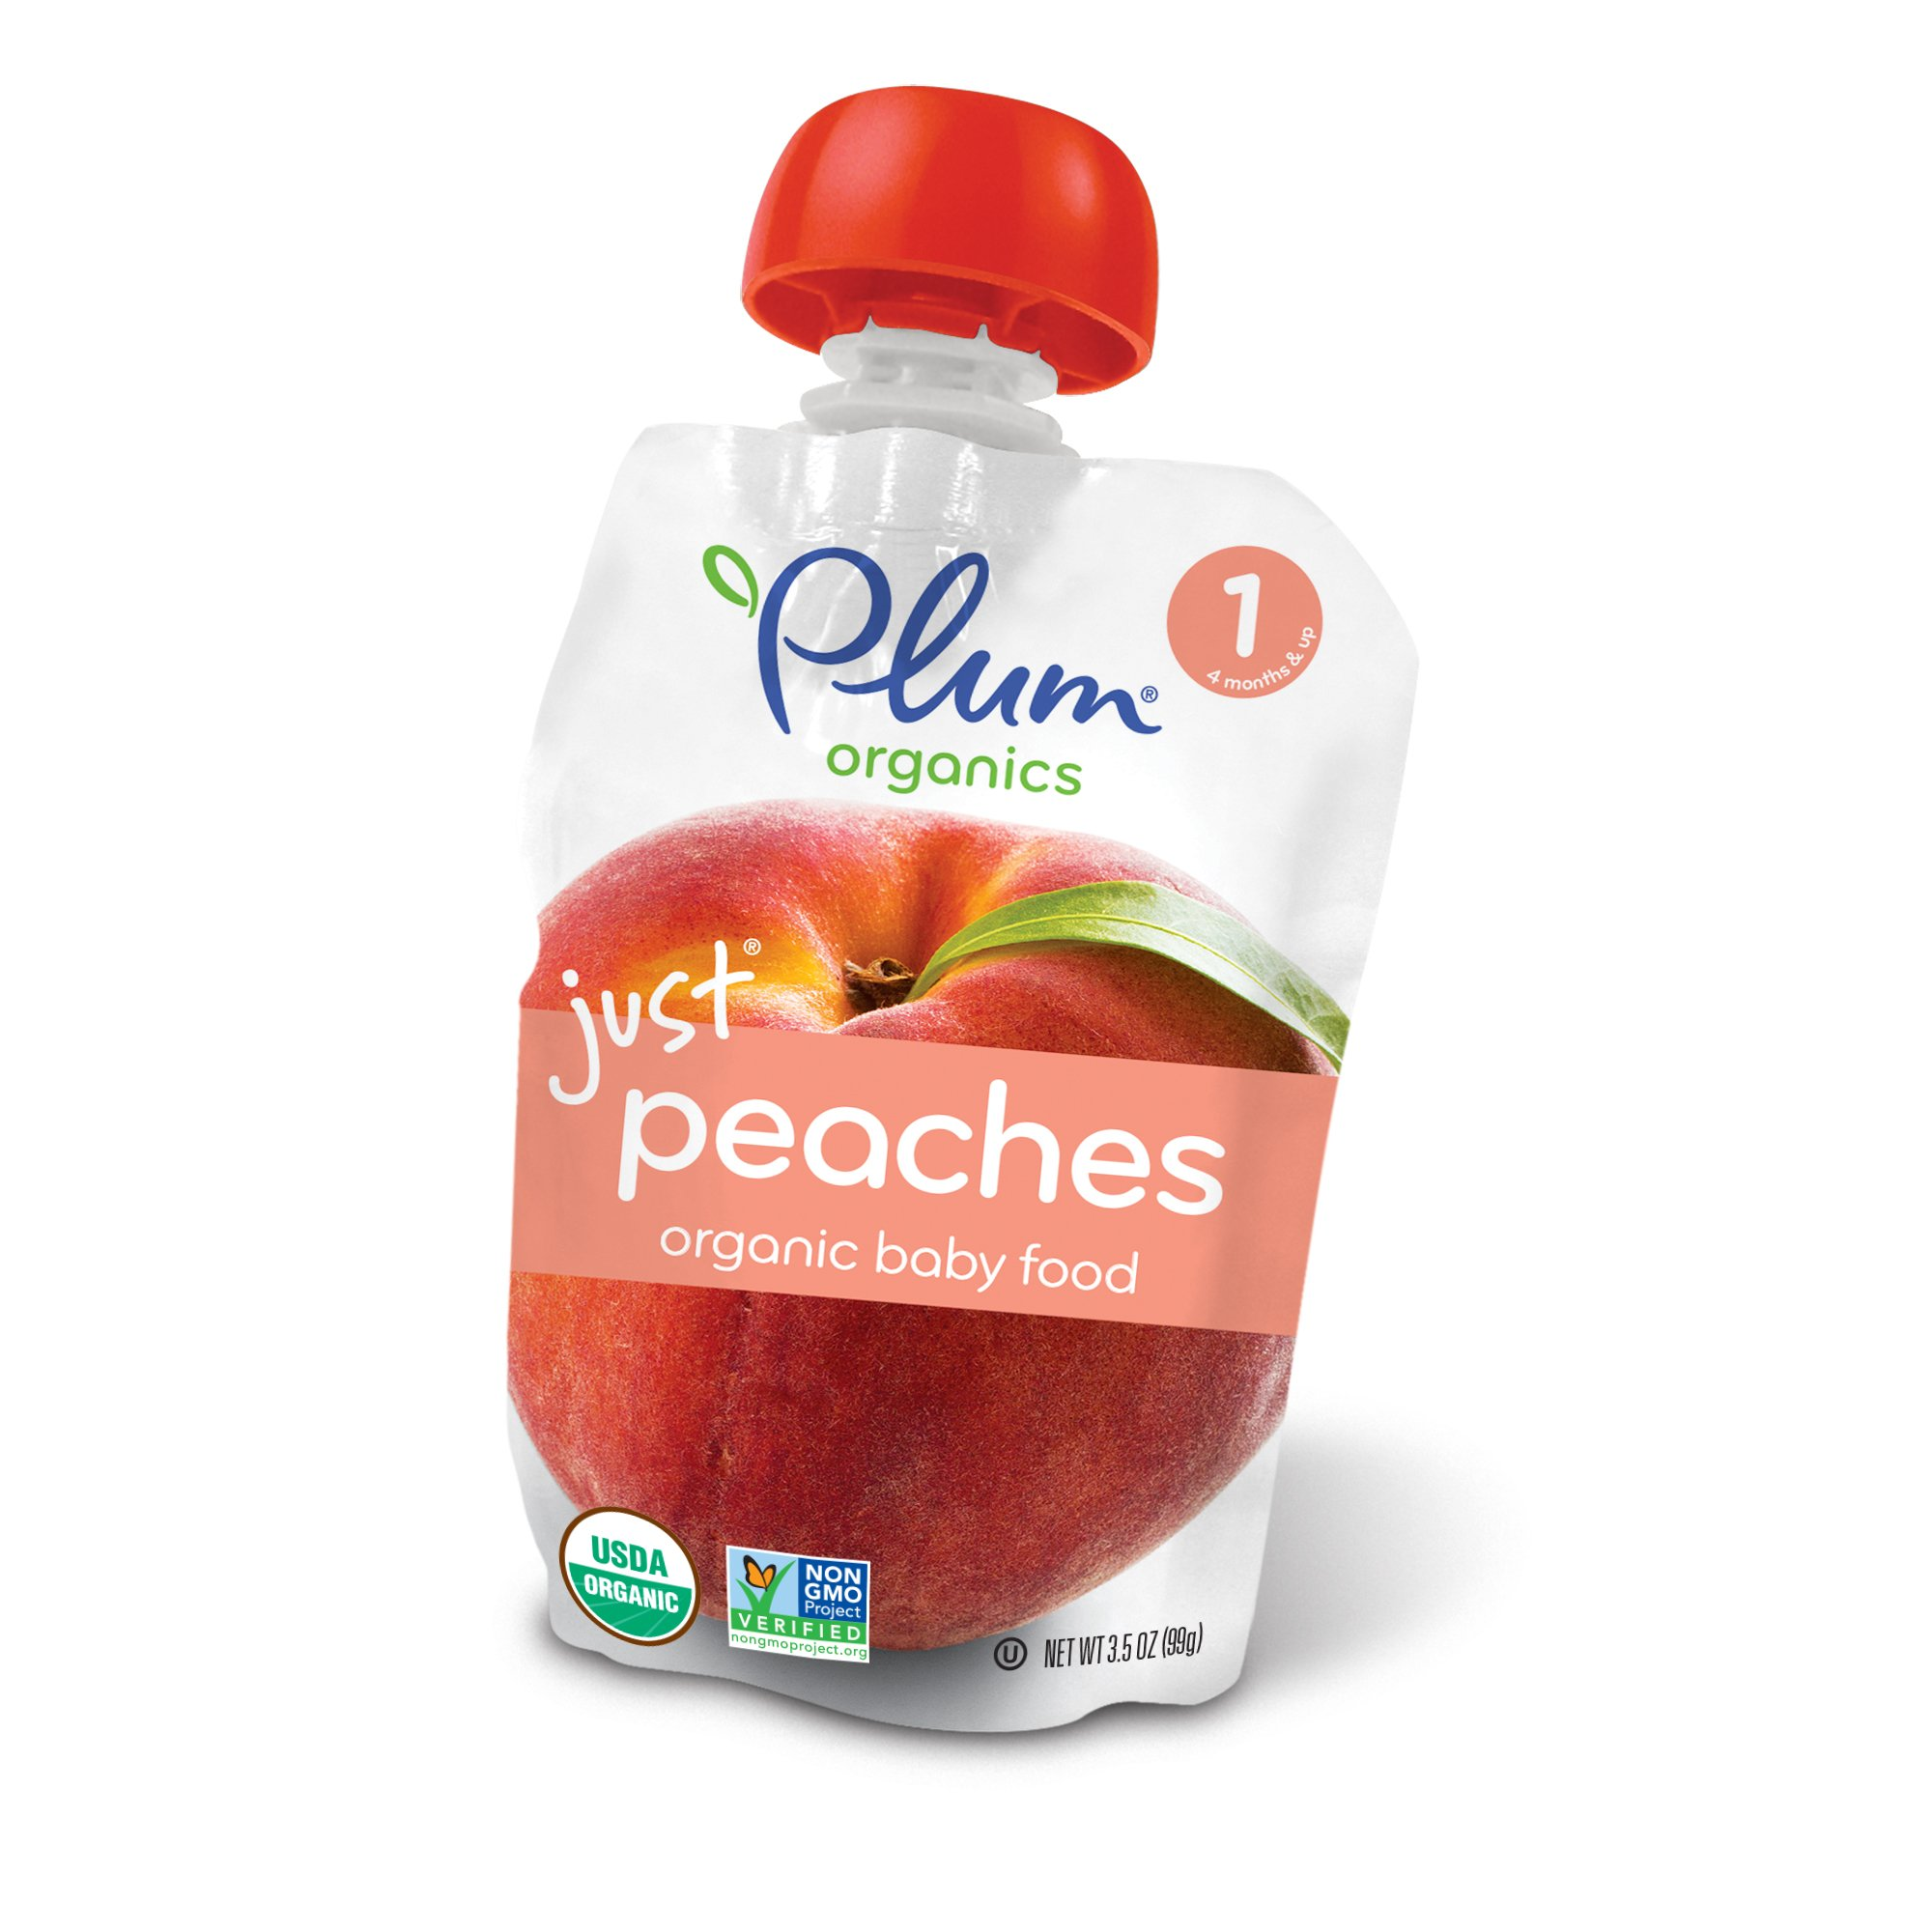 Plum Organics Stage 1, Organic Baby Food, Just Peaches, 3.5 ounce pouch (Pack of 12)